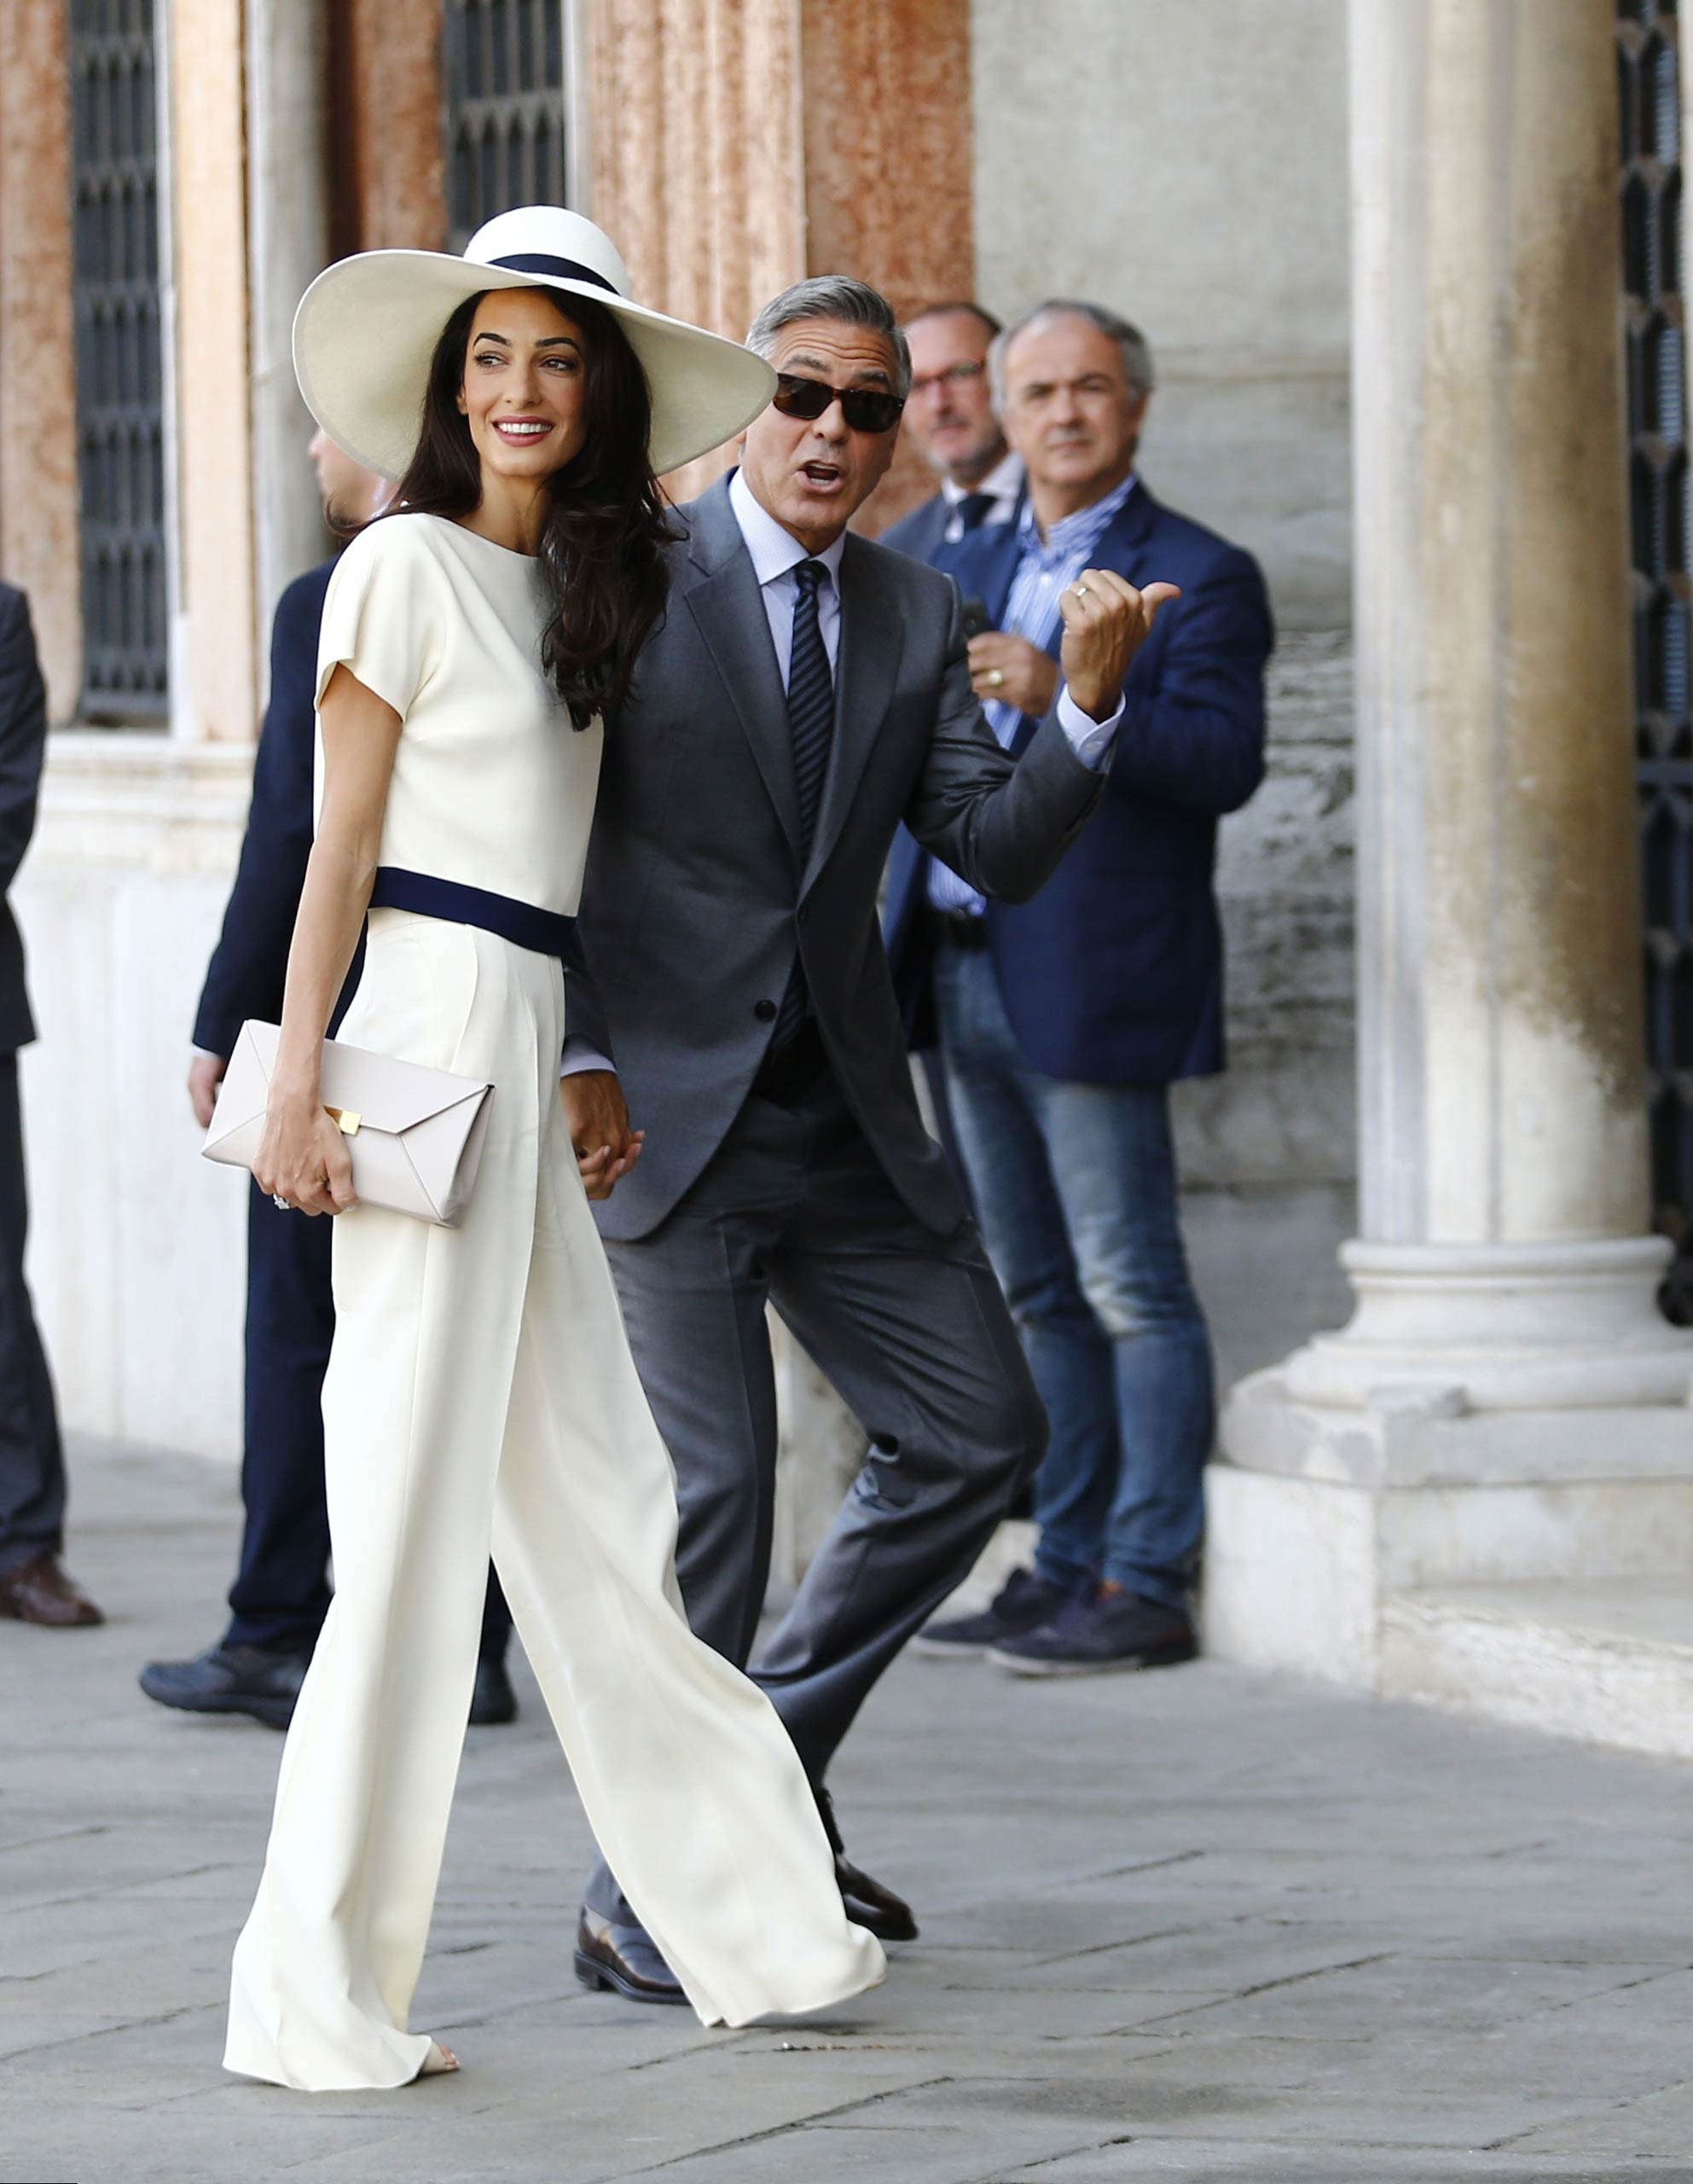 Amal and George Clooney arrive at the palazzo Ca Farsetti for a civil ceremony to officialize their wedding in Venice on Sept. 29, 2014.